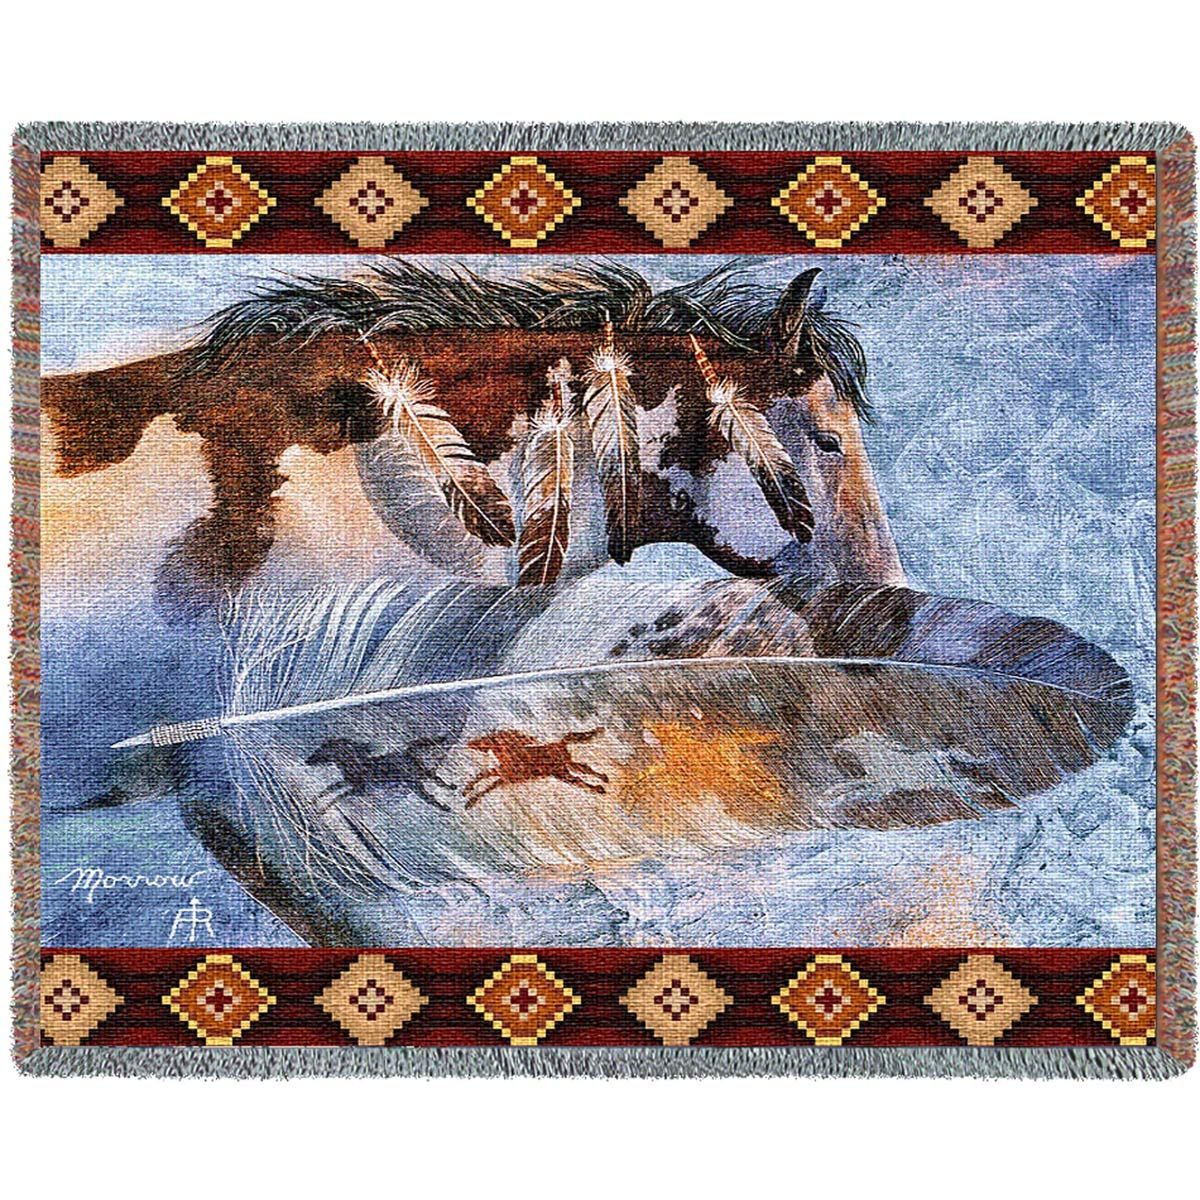 Horse Feathers Blanket